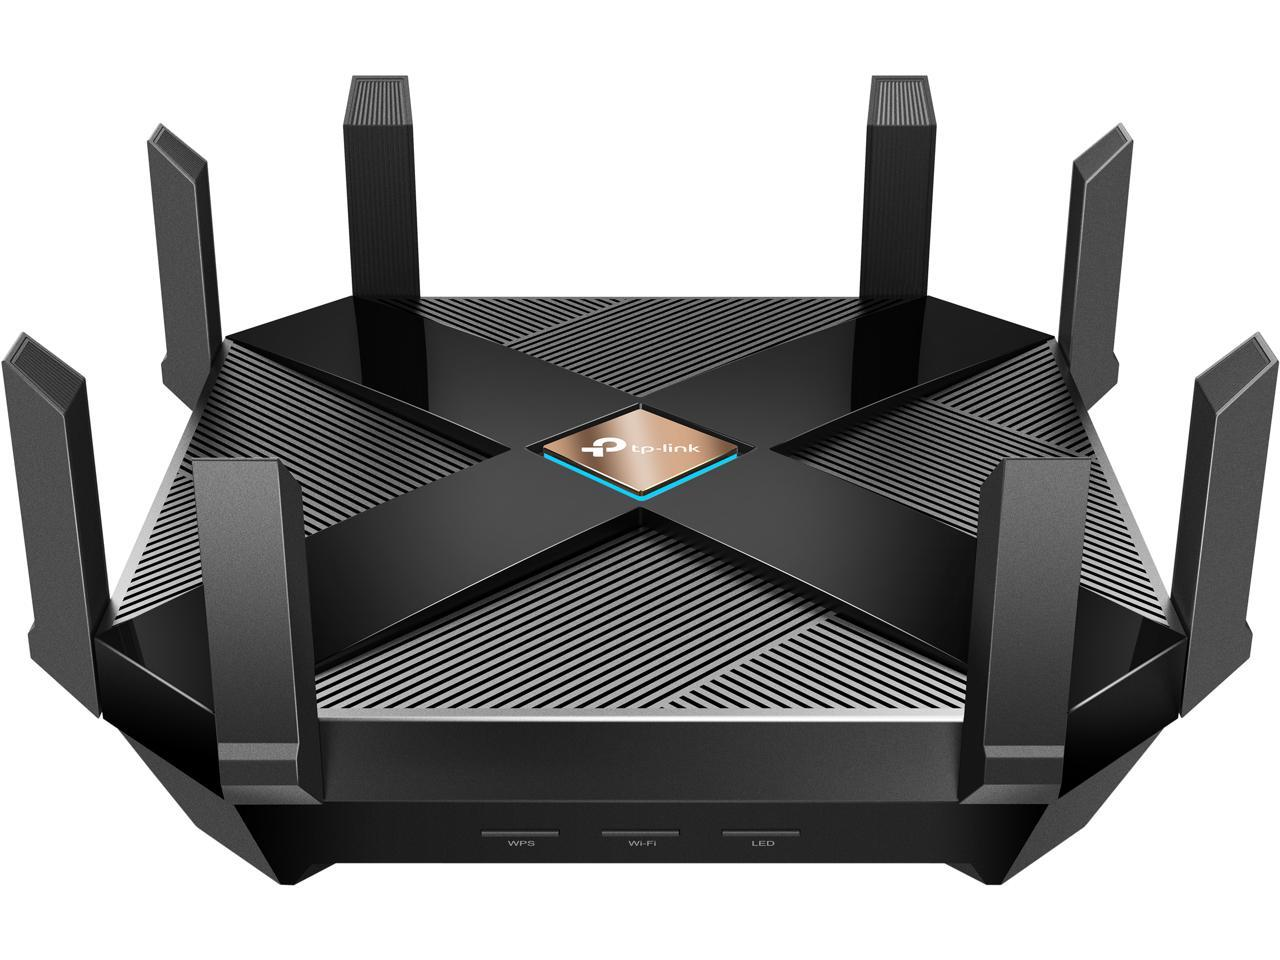 TP-Link Wi-Fi 6 AX6000 8-Stream Smart WiFi Router